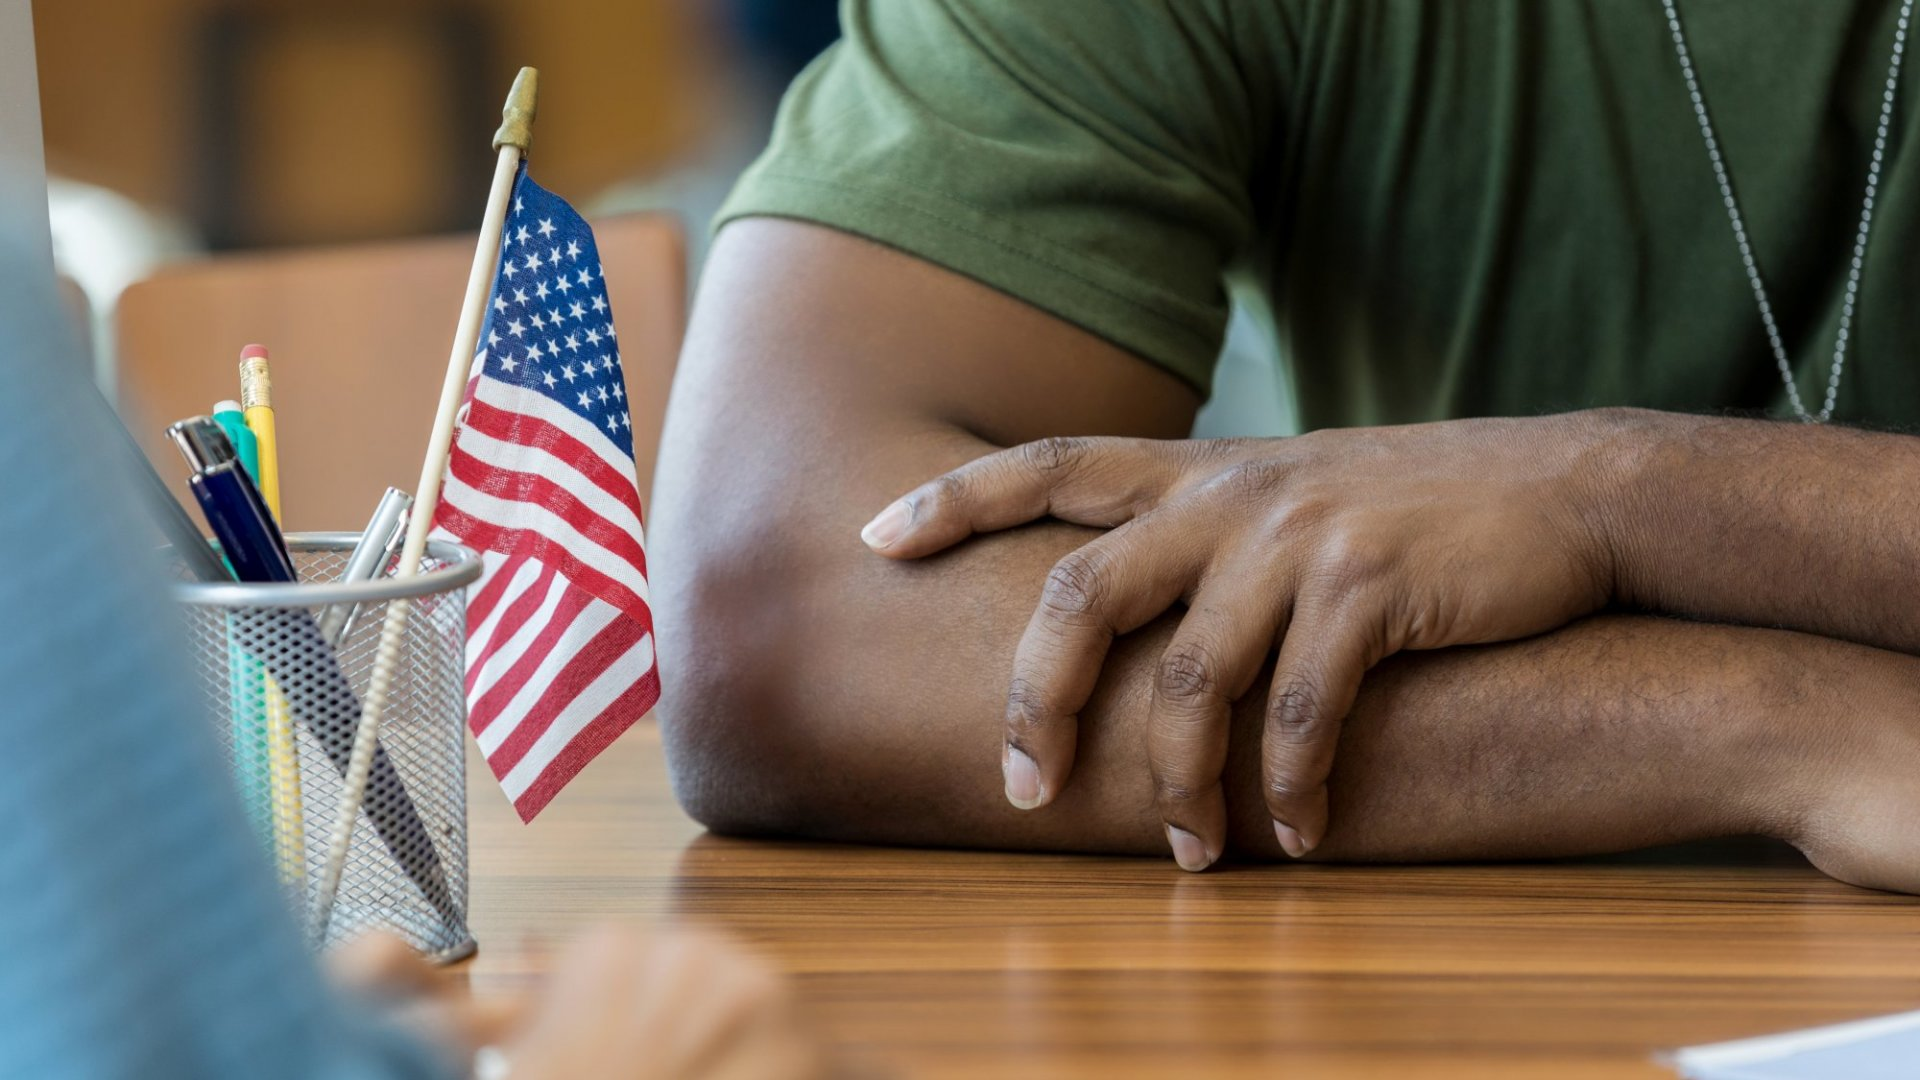 5 Easy Ways to Be More Veteran-Friendly in the Workplace